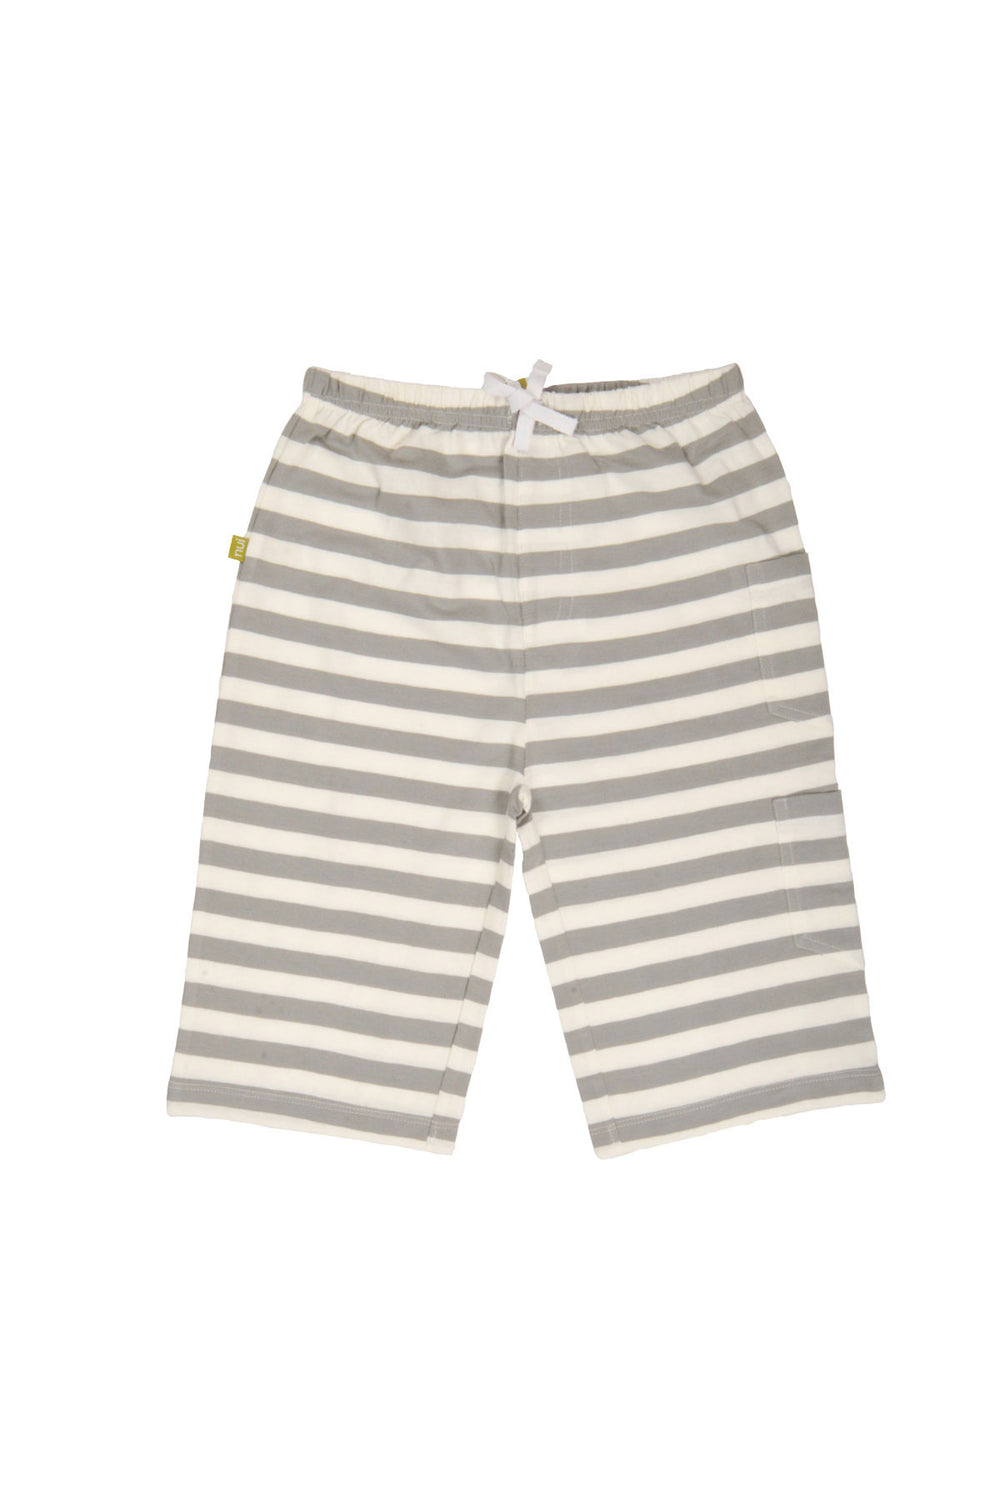 Kavi Shorts- Grey Stripe